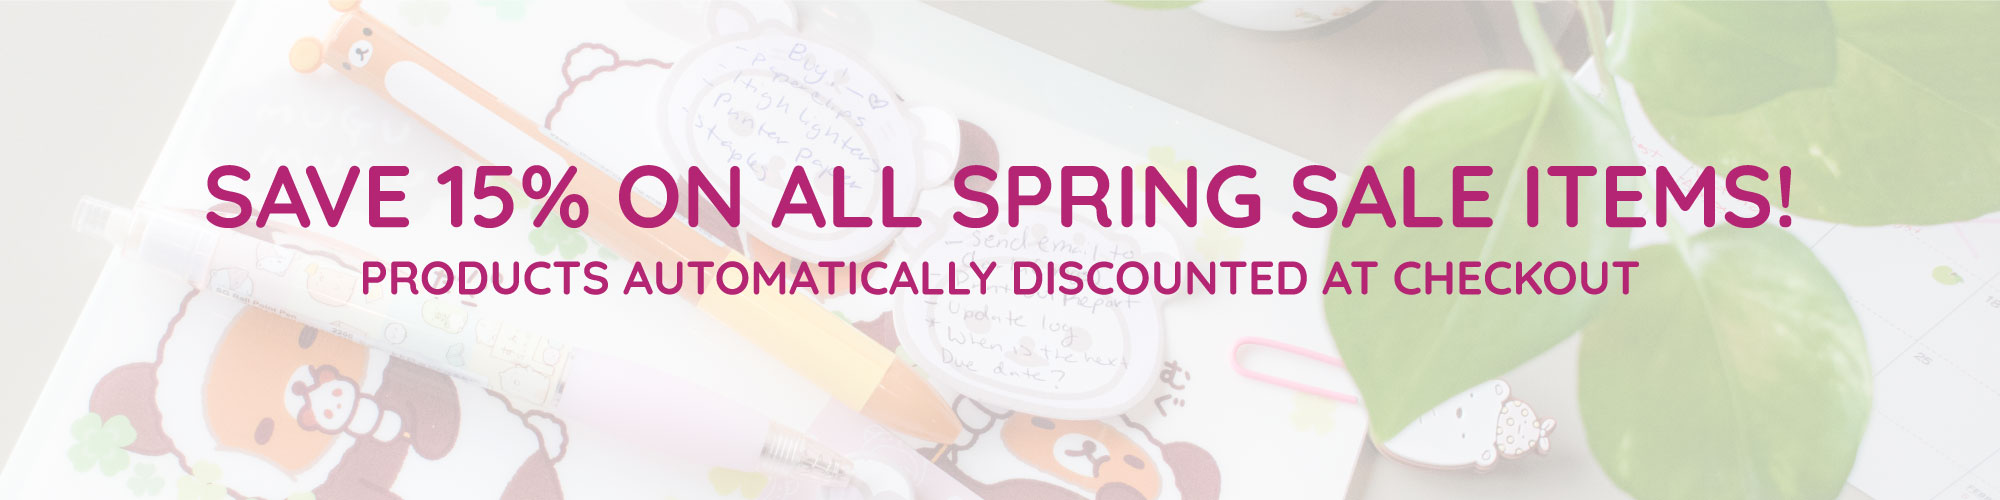 spring-sale-category-banner-01.jpg